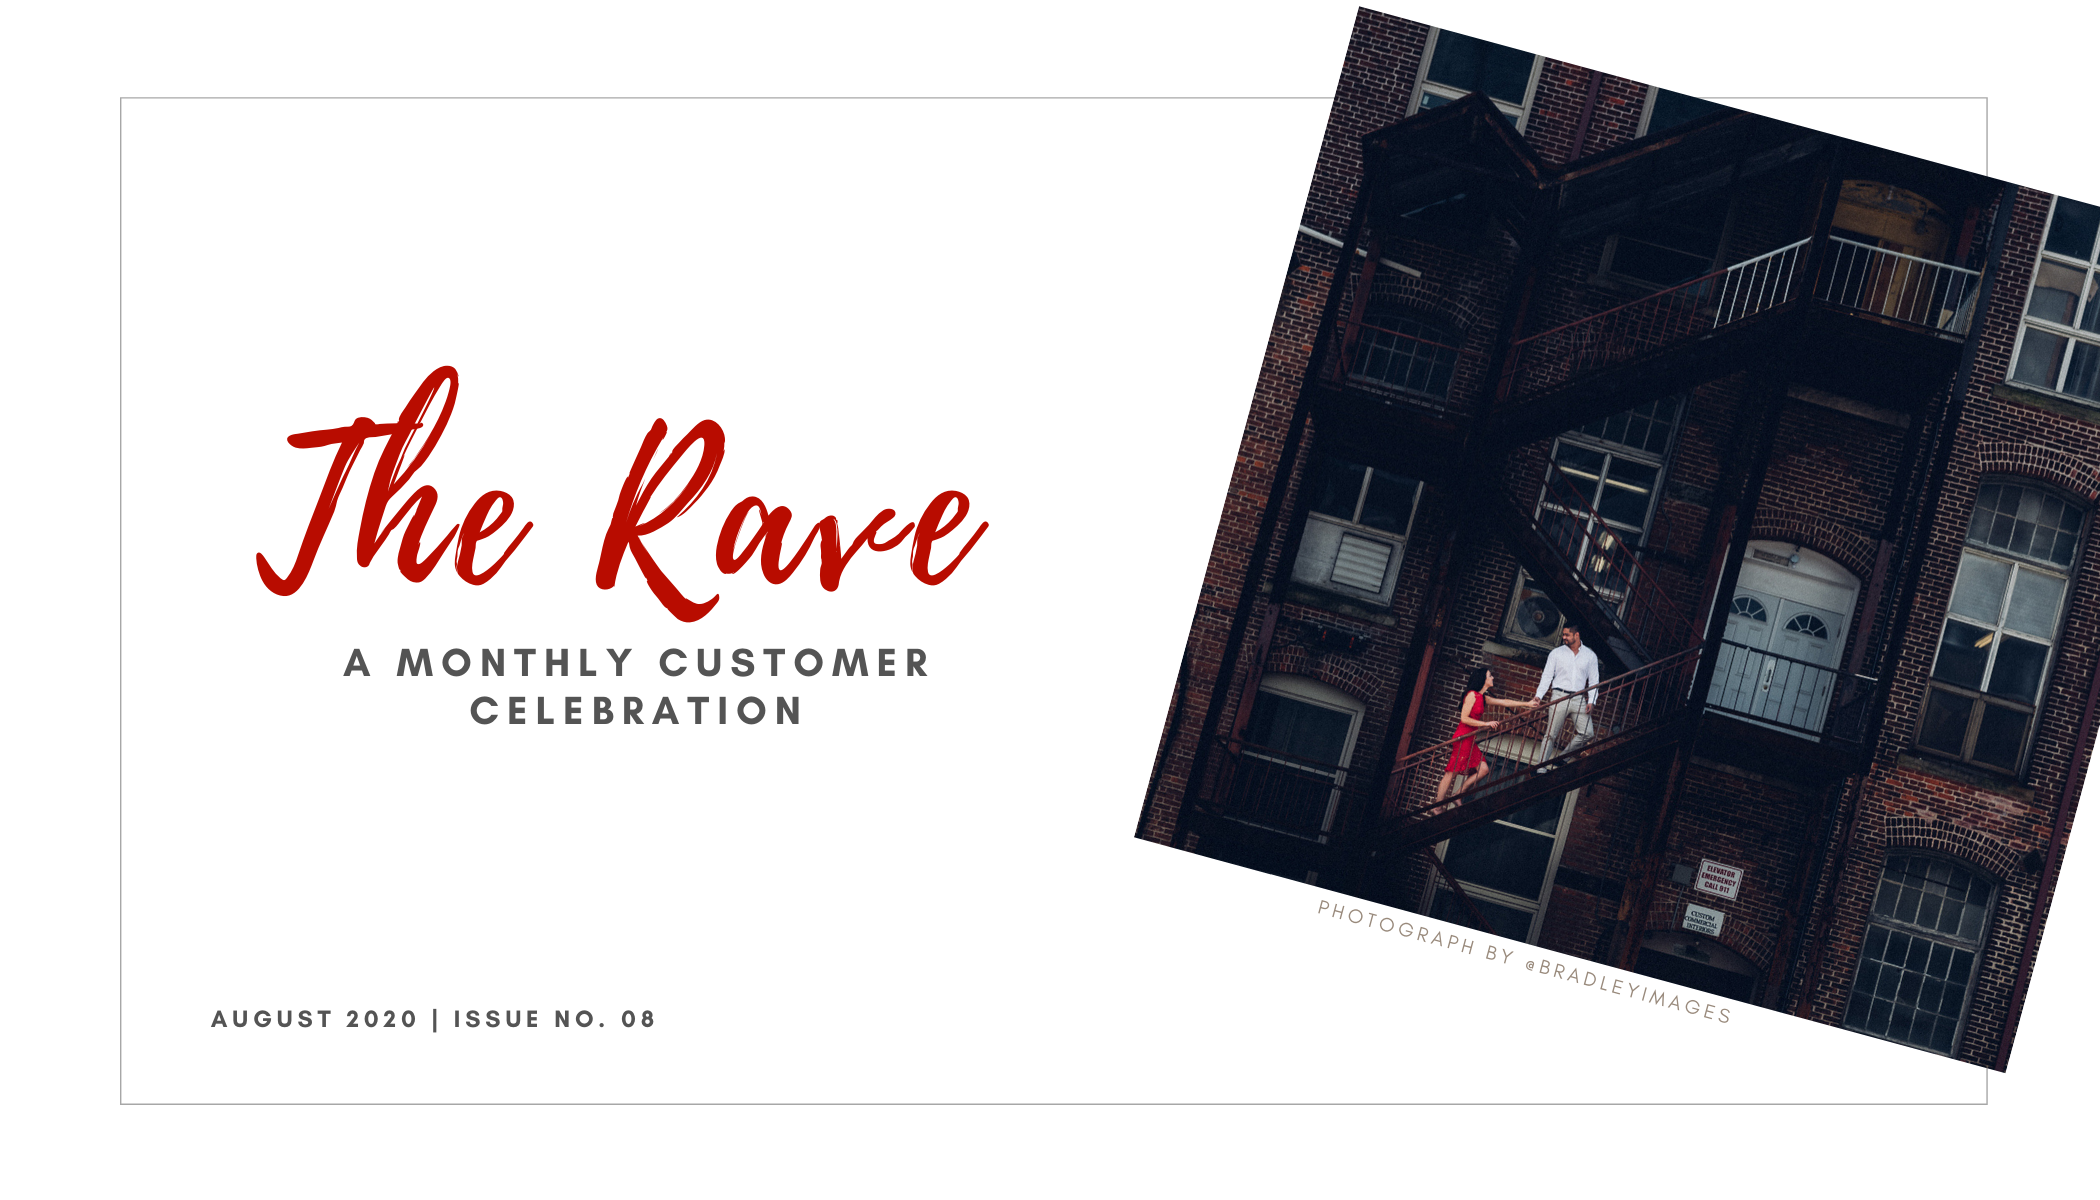 Customer celebration with ShootDotEdit's The Rave — Your most lived images from the ShootDotEdit Instagram in August.